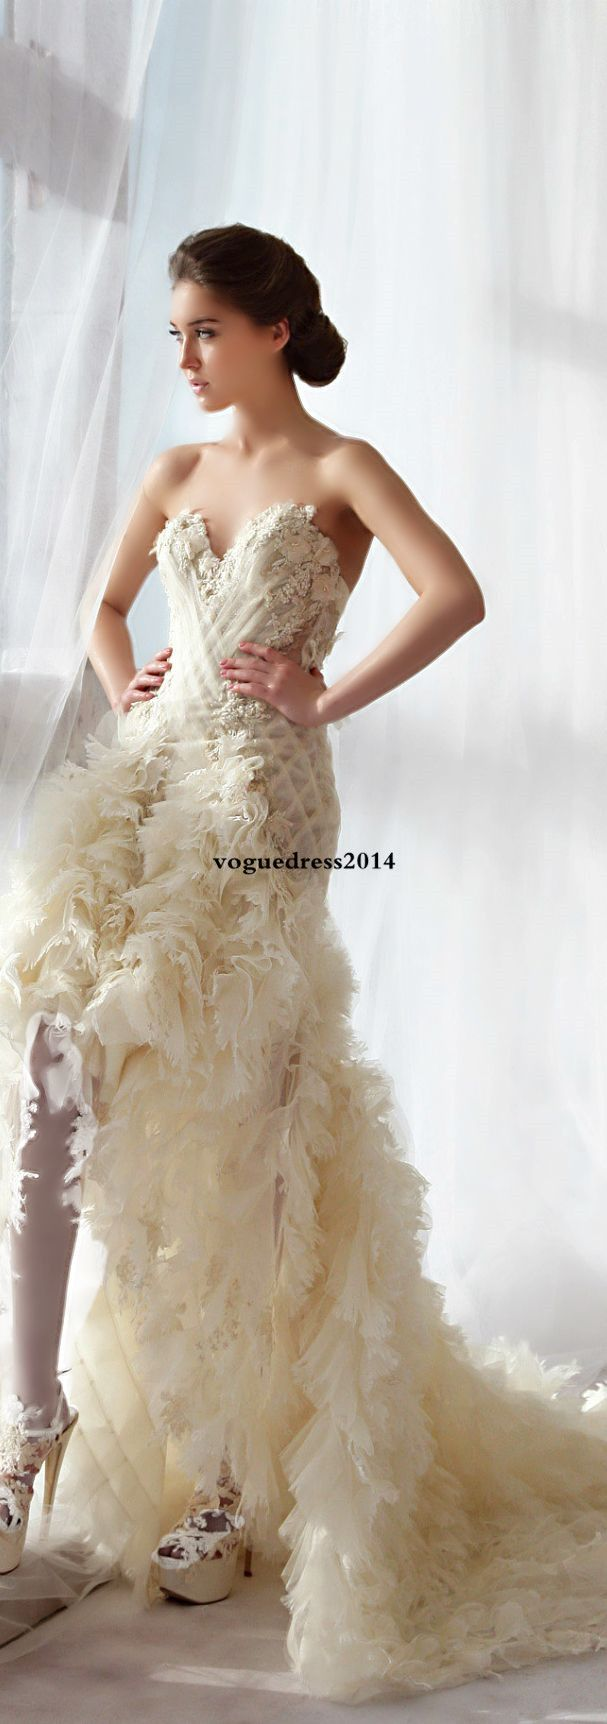 New collection of wedding dresses